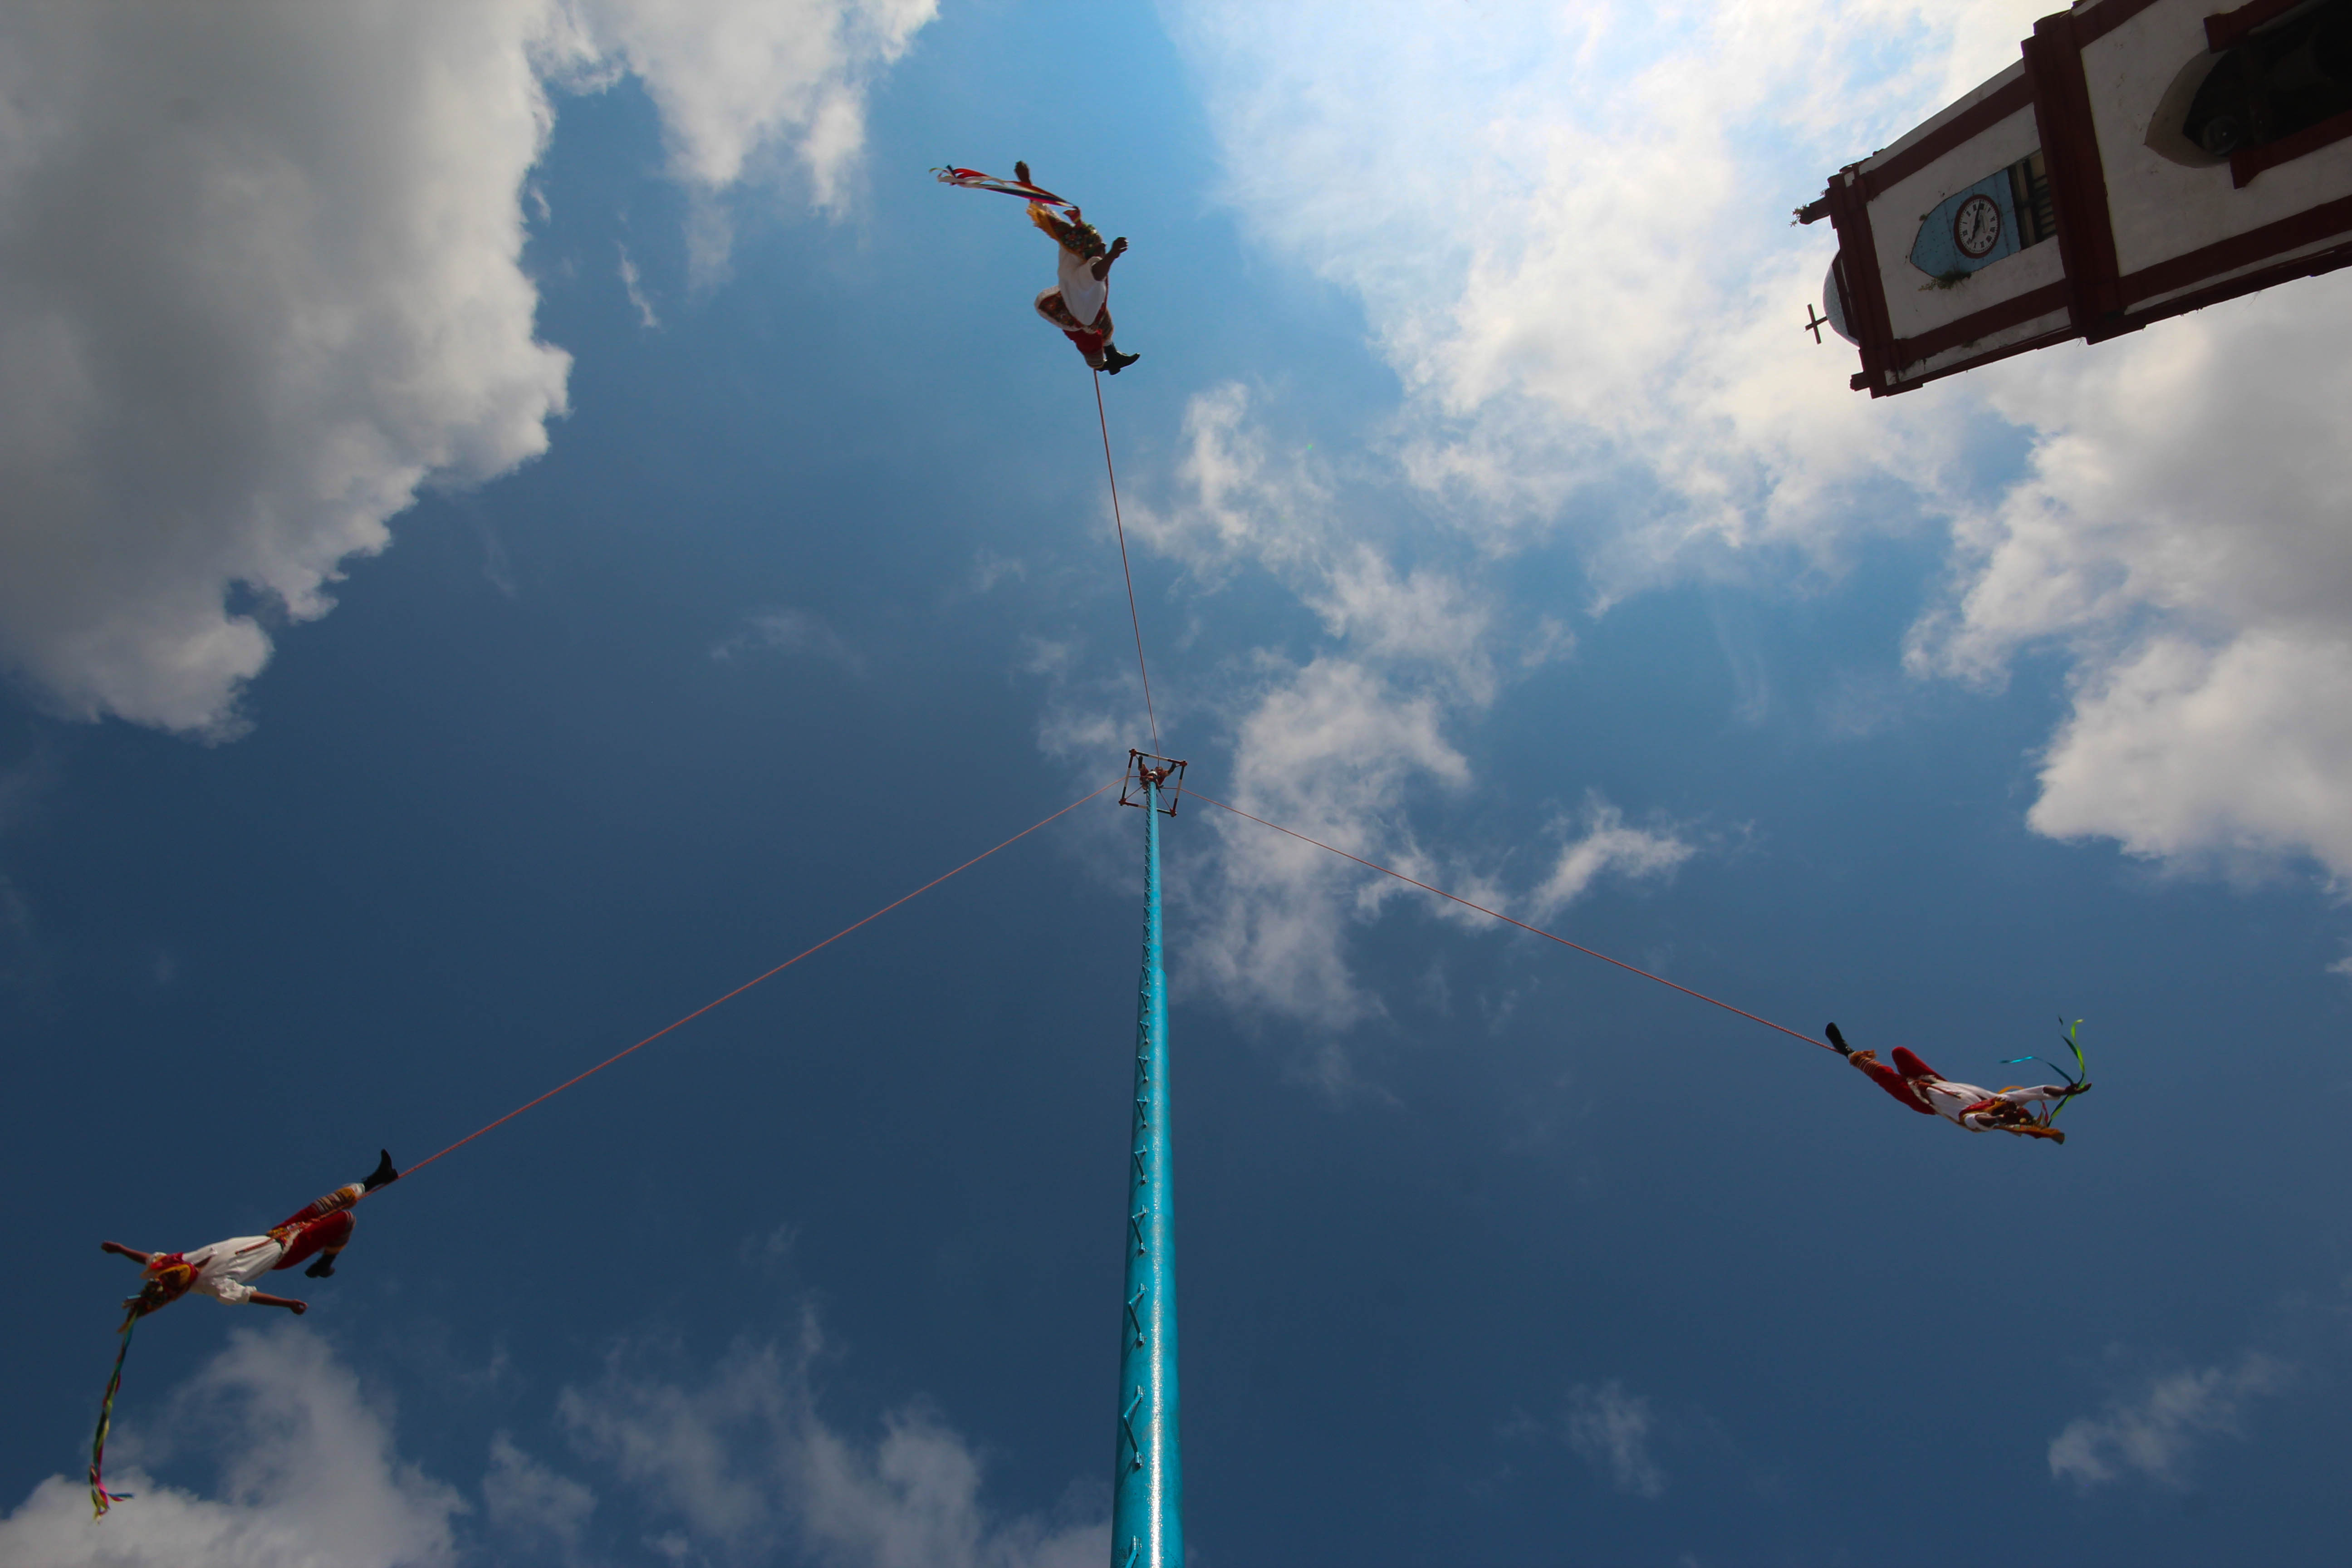 The voladores fly in Papantla's town square. (Photo by Amado Treviño)